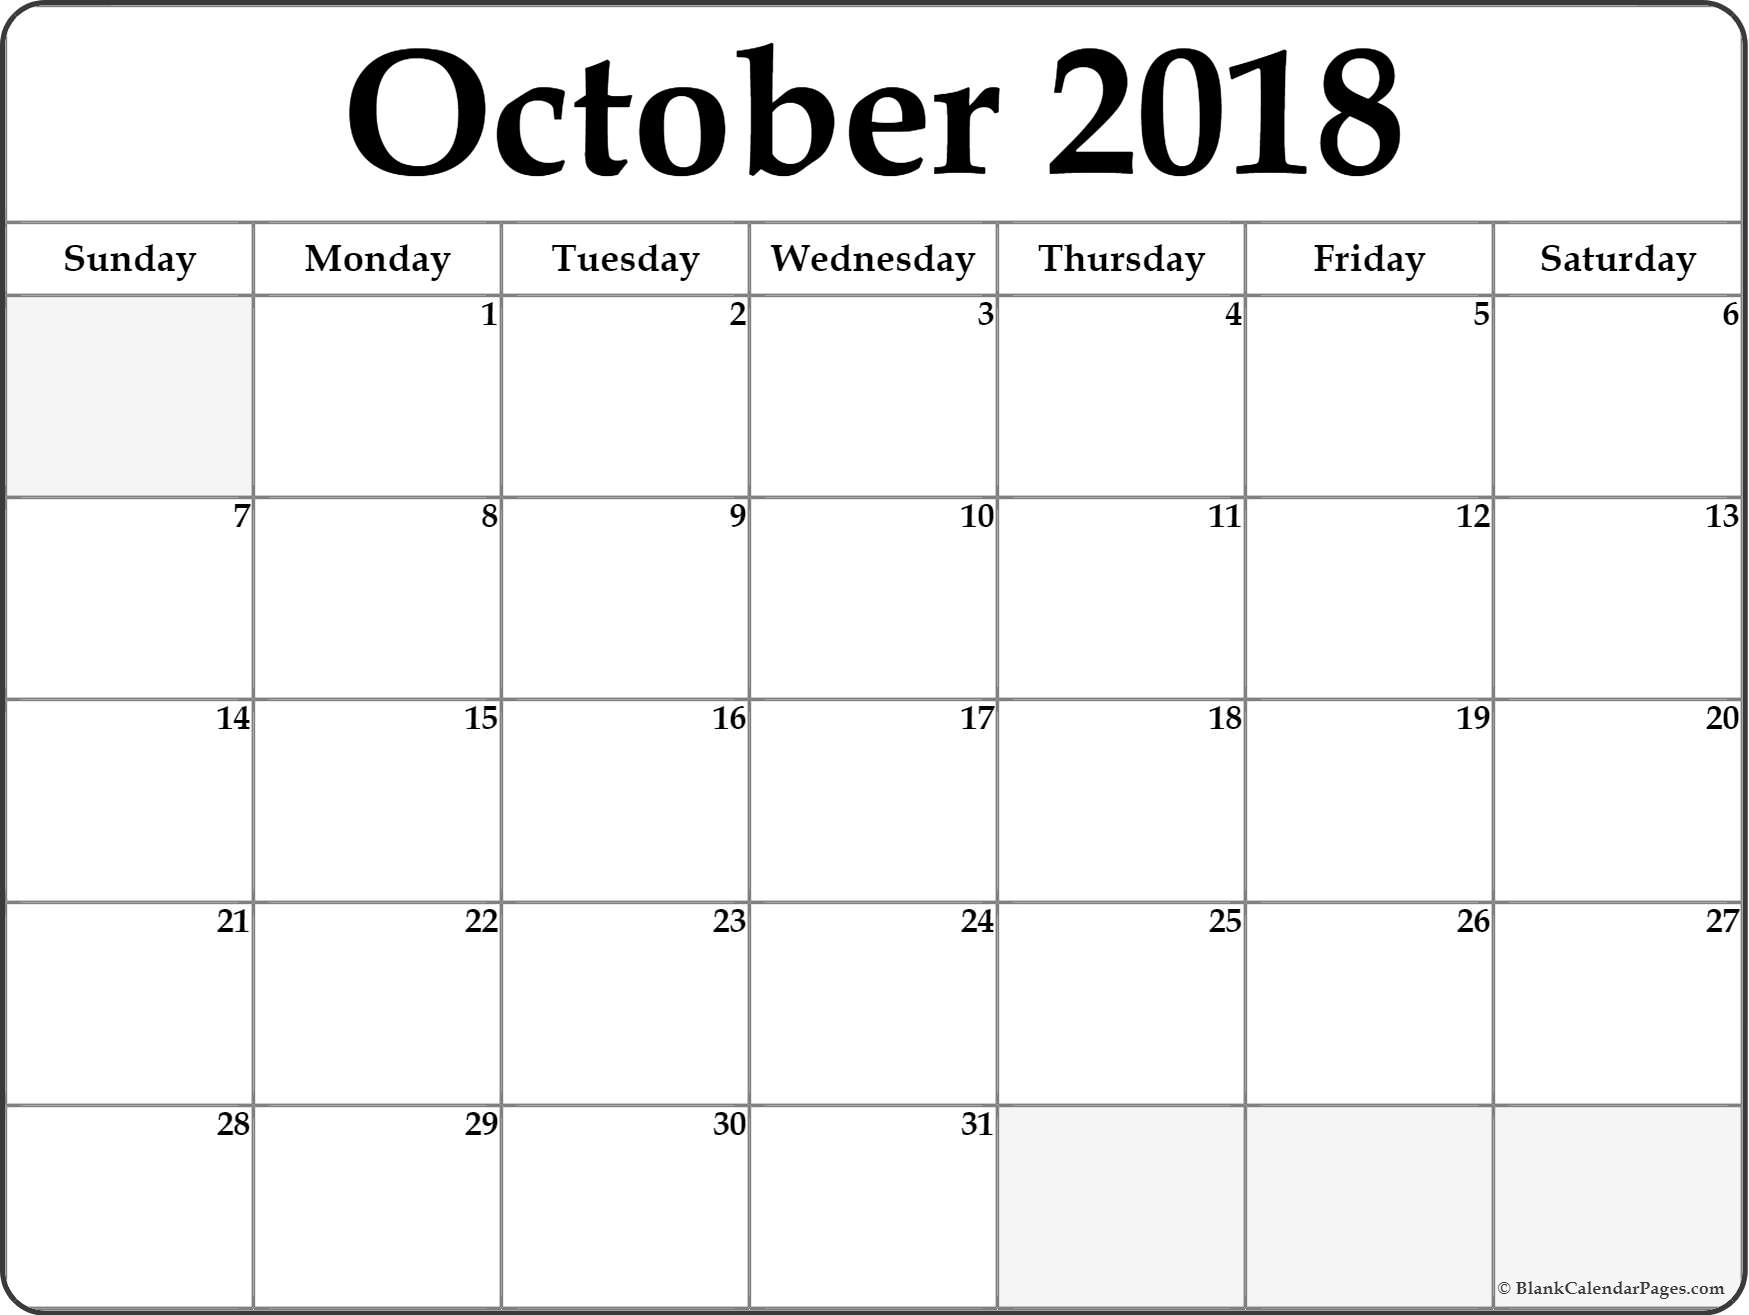 October 2018 Calendar B4 Mainstage Center For The Arts